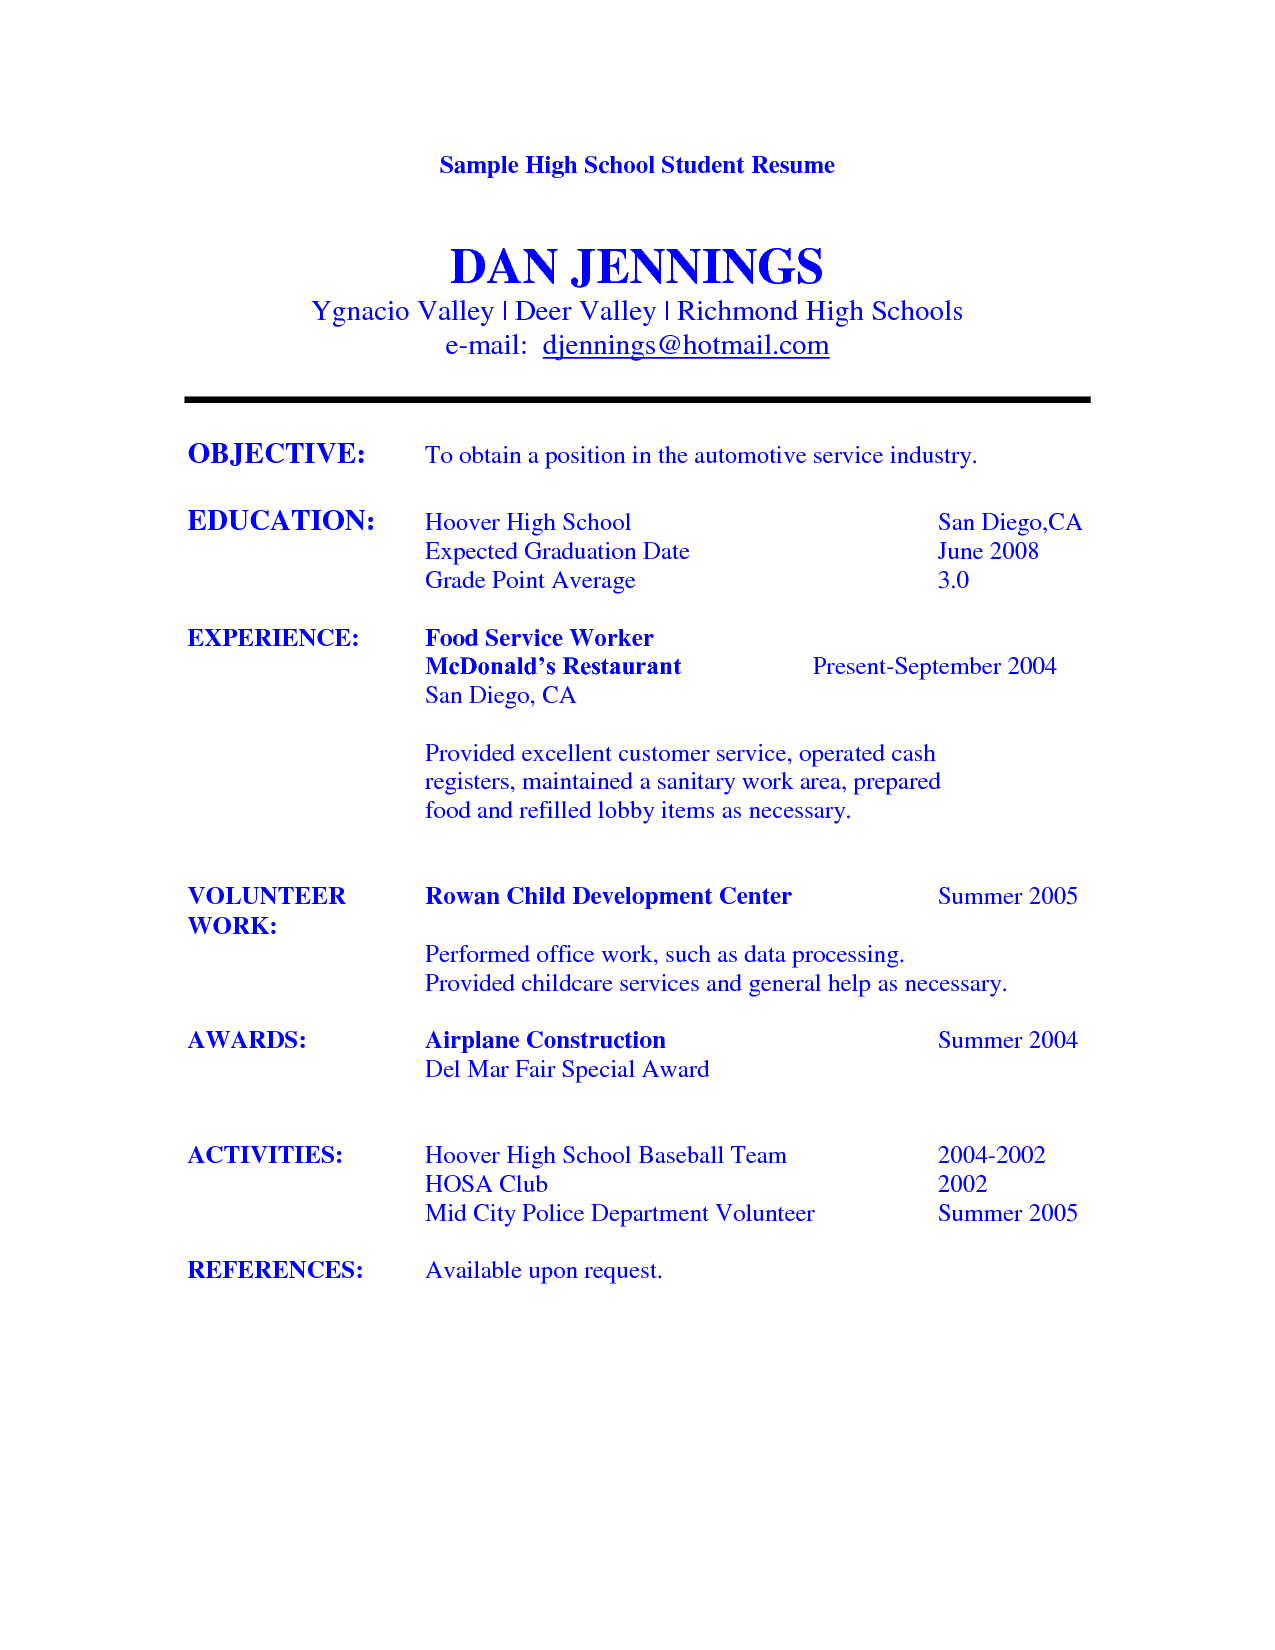 College Student Resume Examples Resume Example For High School Student Sample Resumes  Httpwww